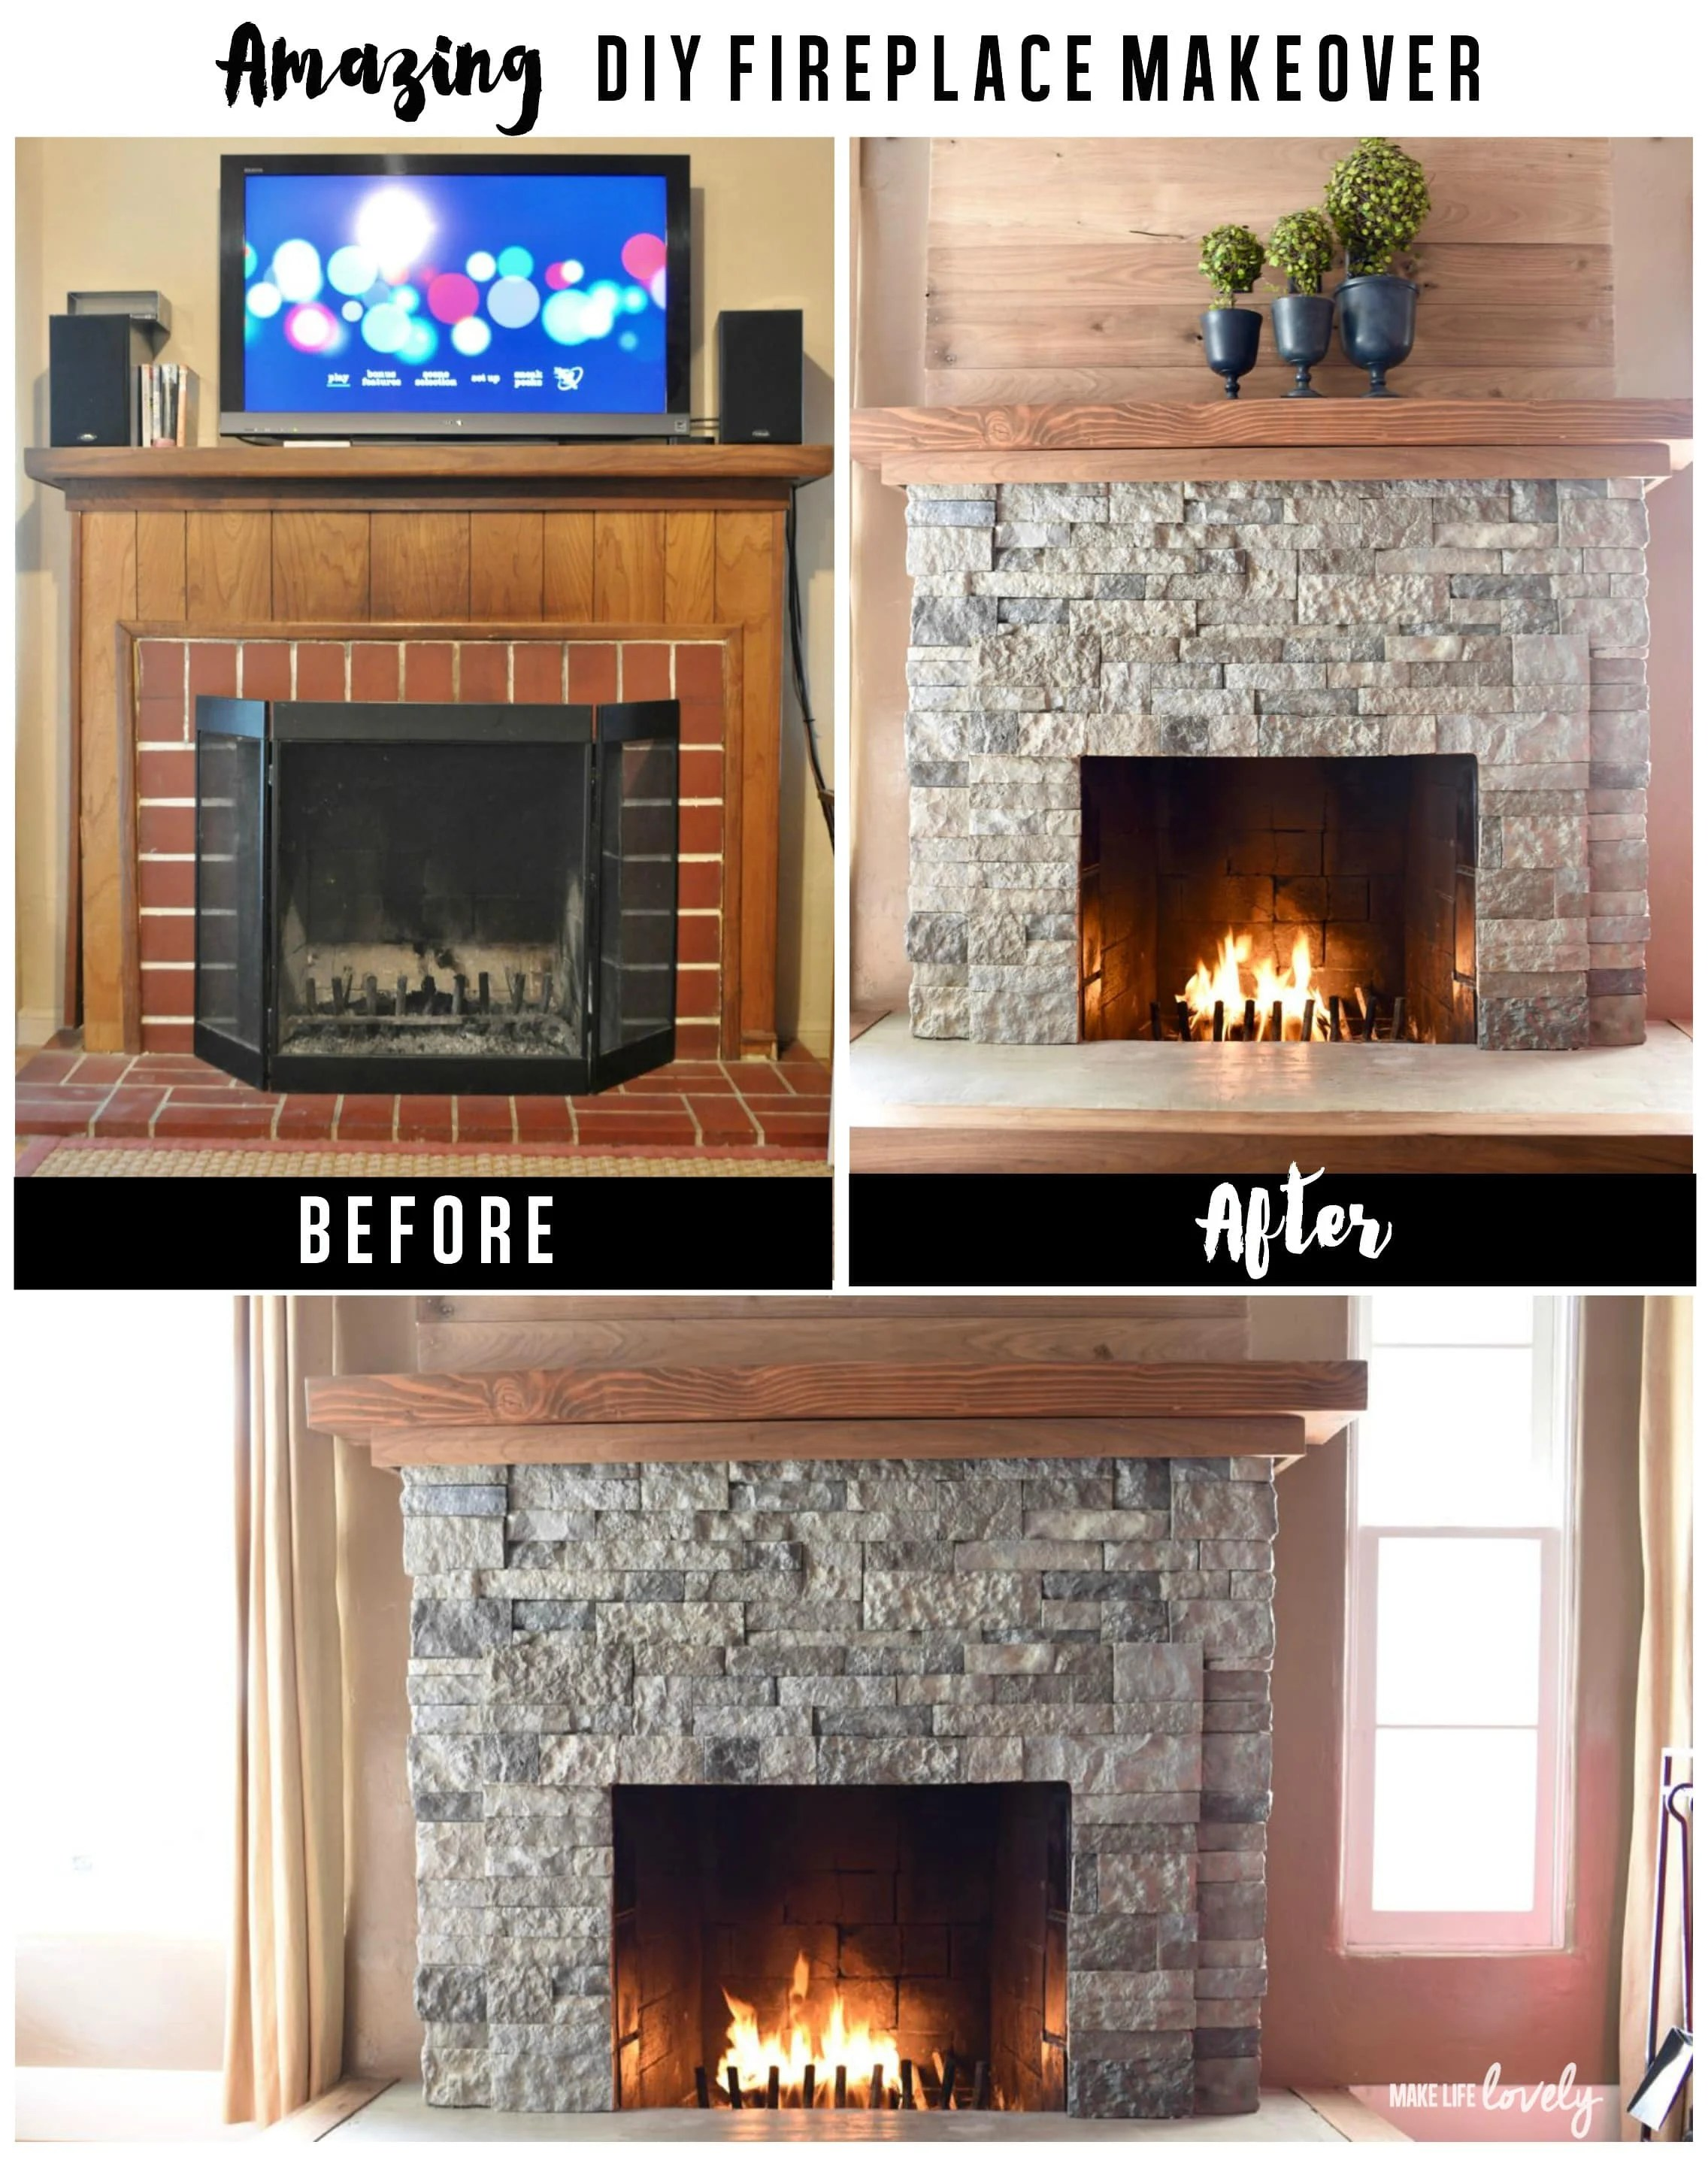 Fireplace Stone Airstone Fireplace Makeover From Ugly To Incredible